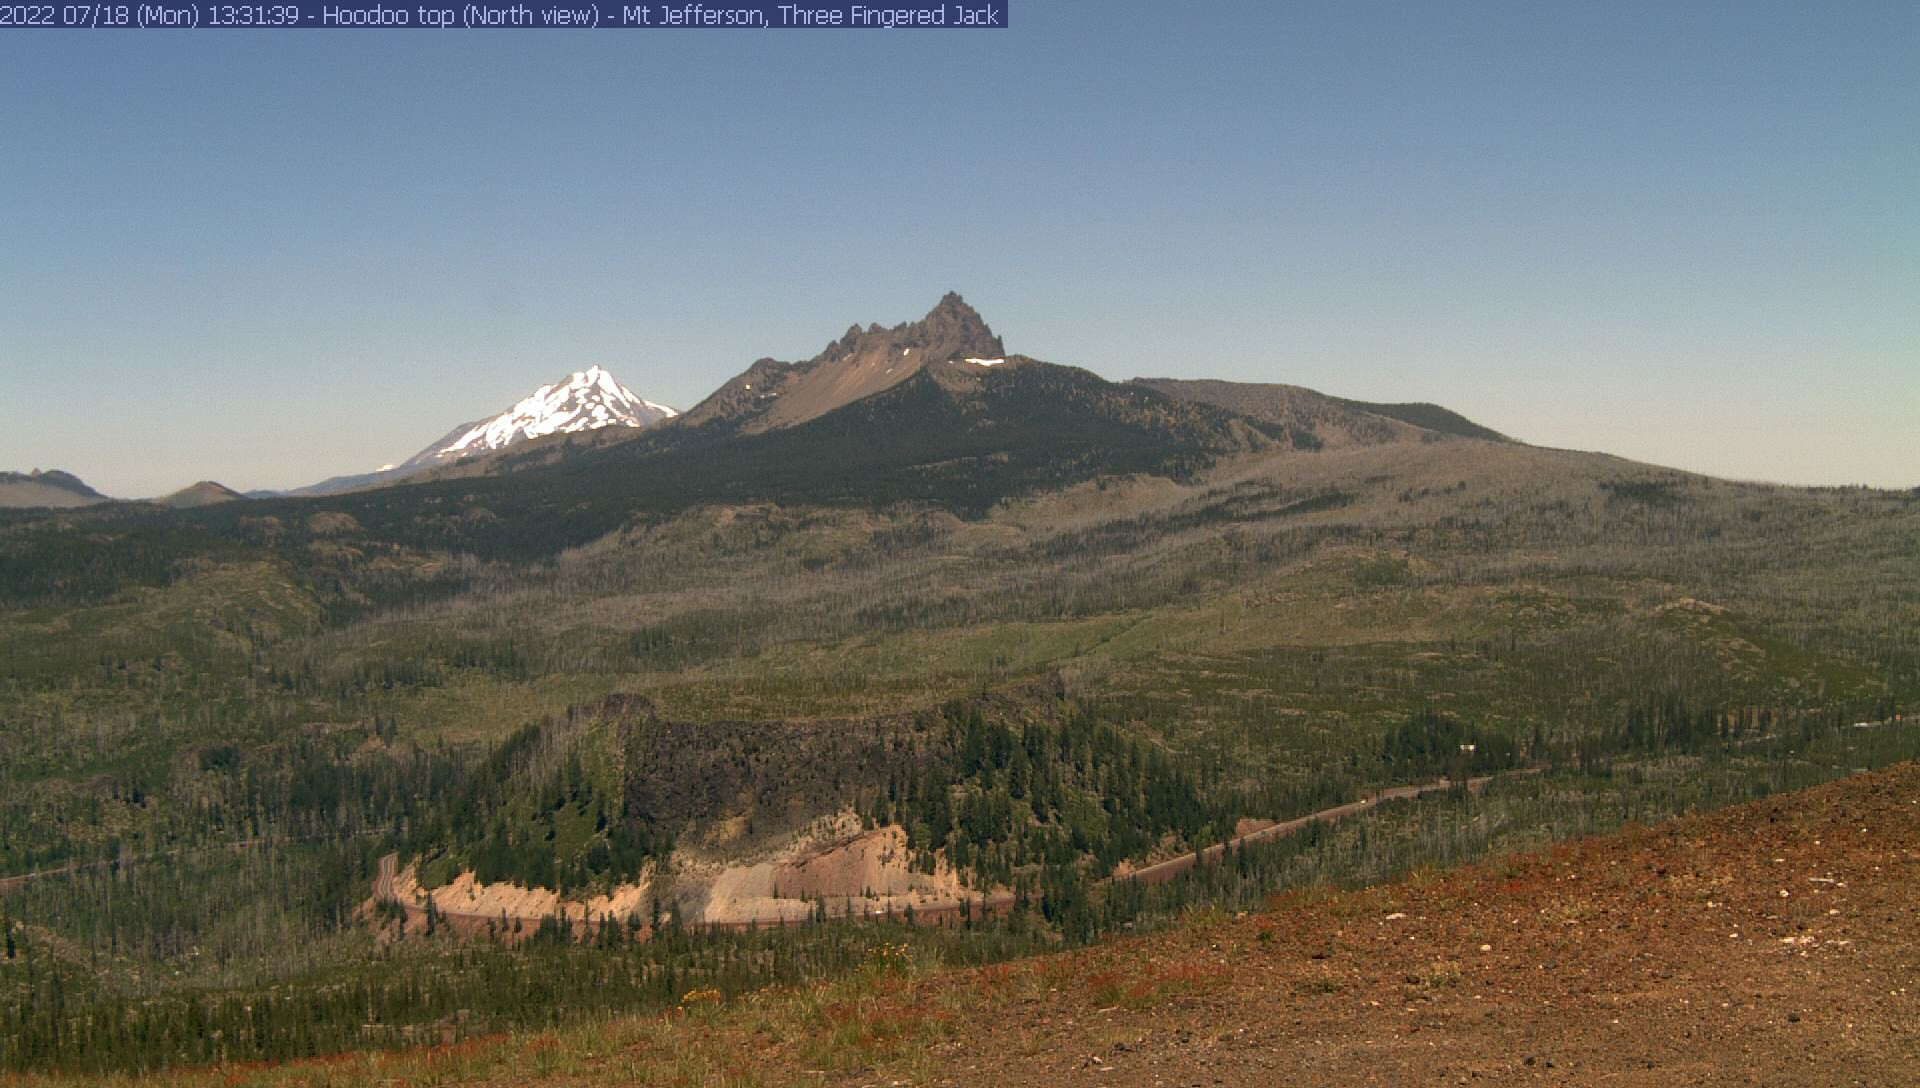 Mt Jefferson, Three-Fingered Jack, Hogg Rock fm top of Hoodoo Butte (N)